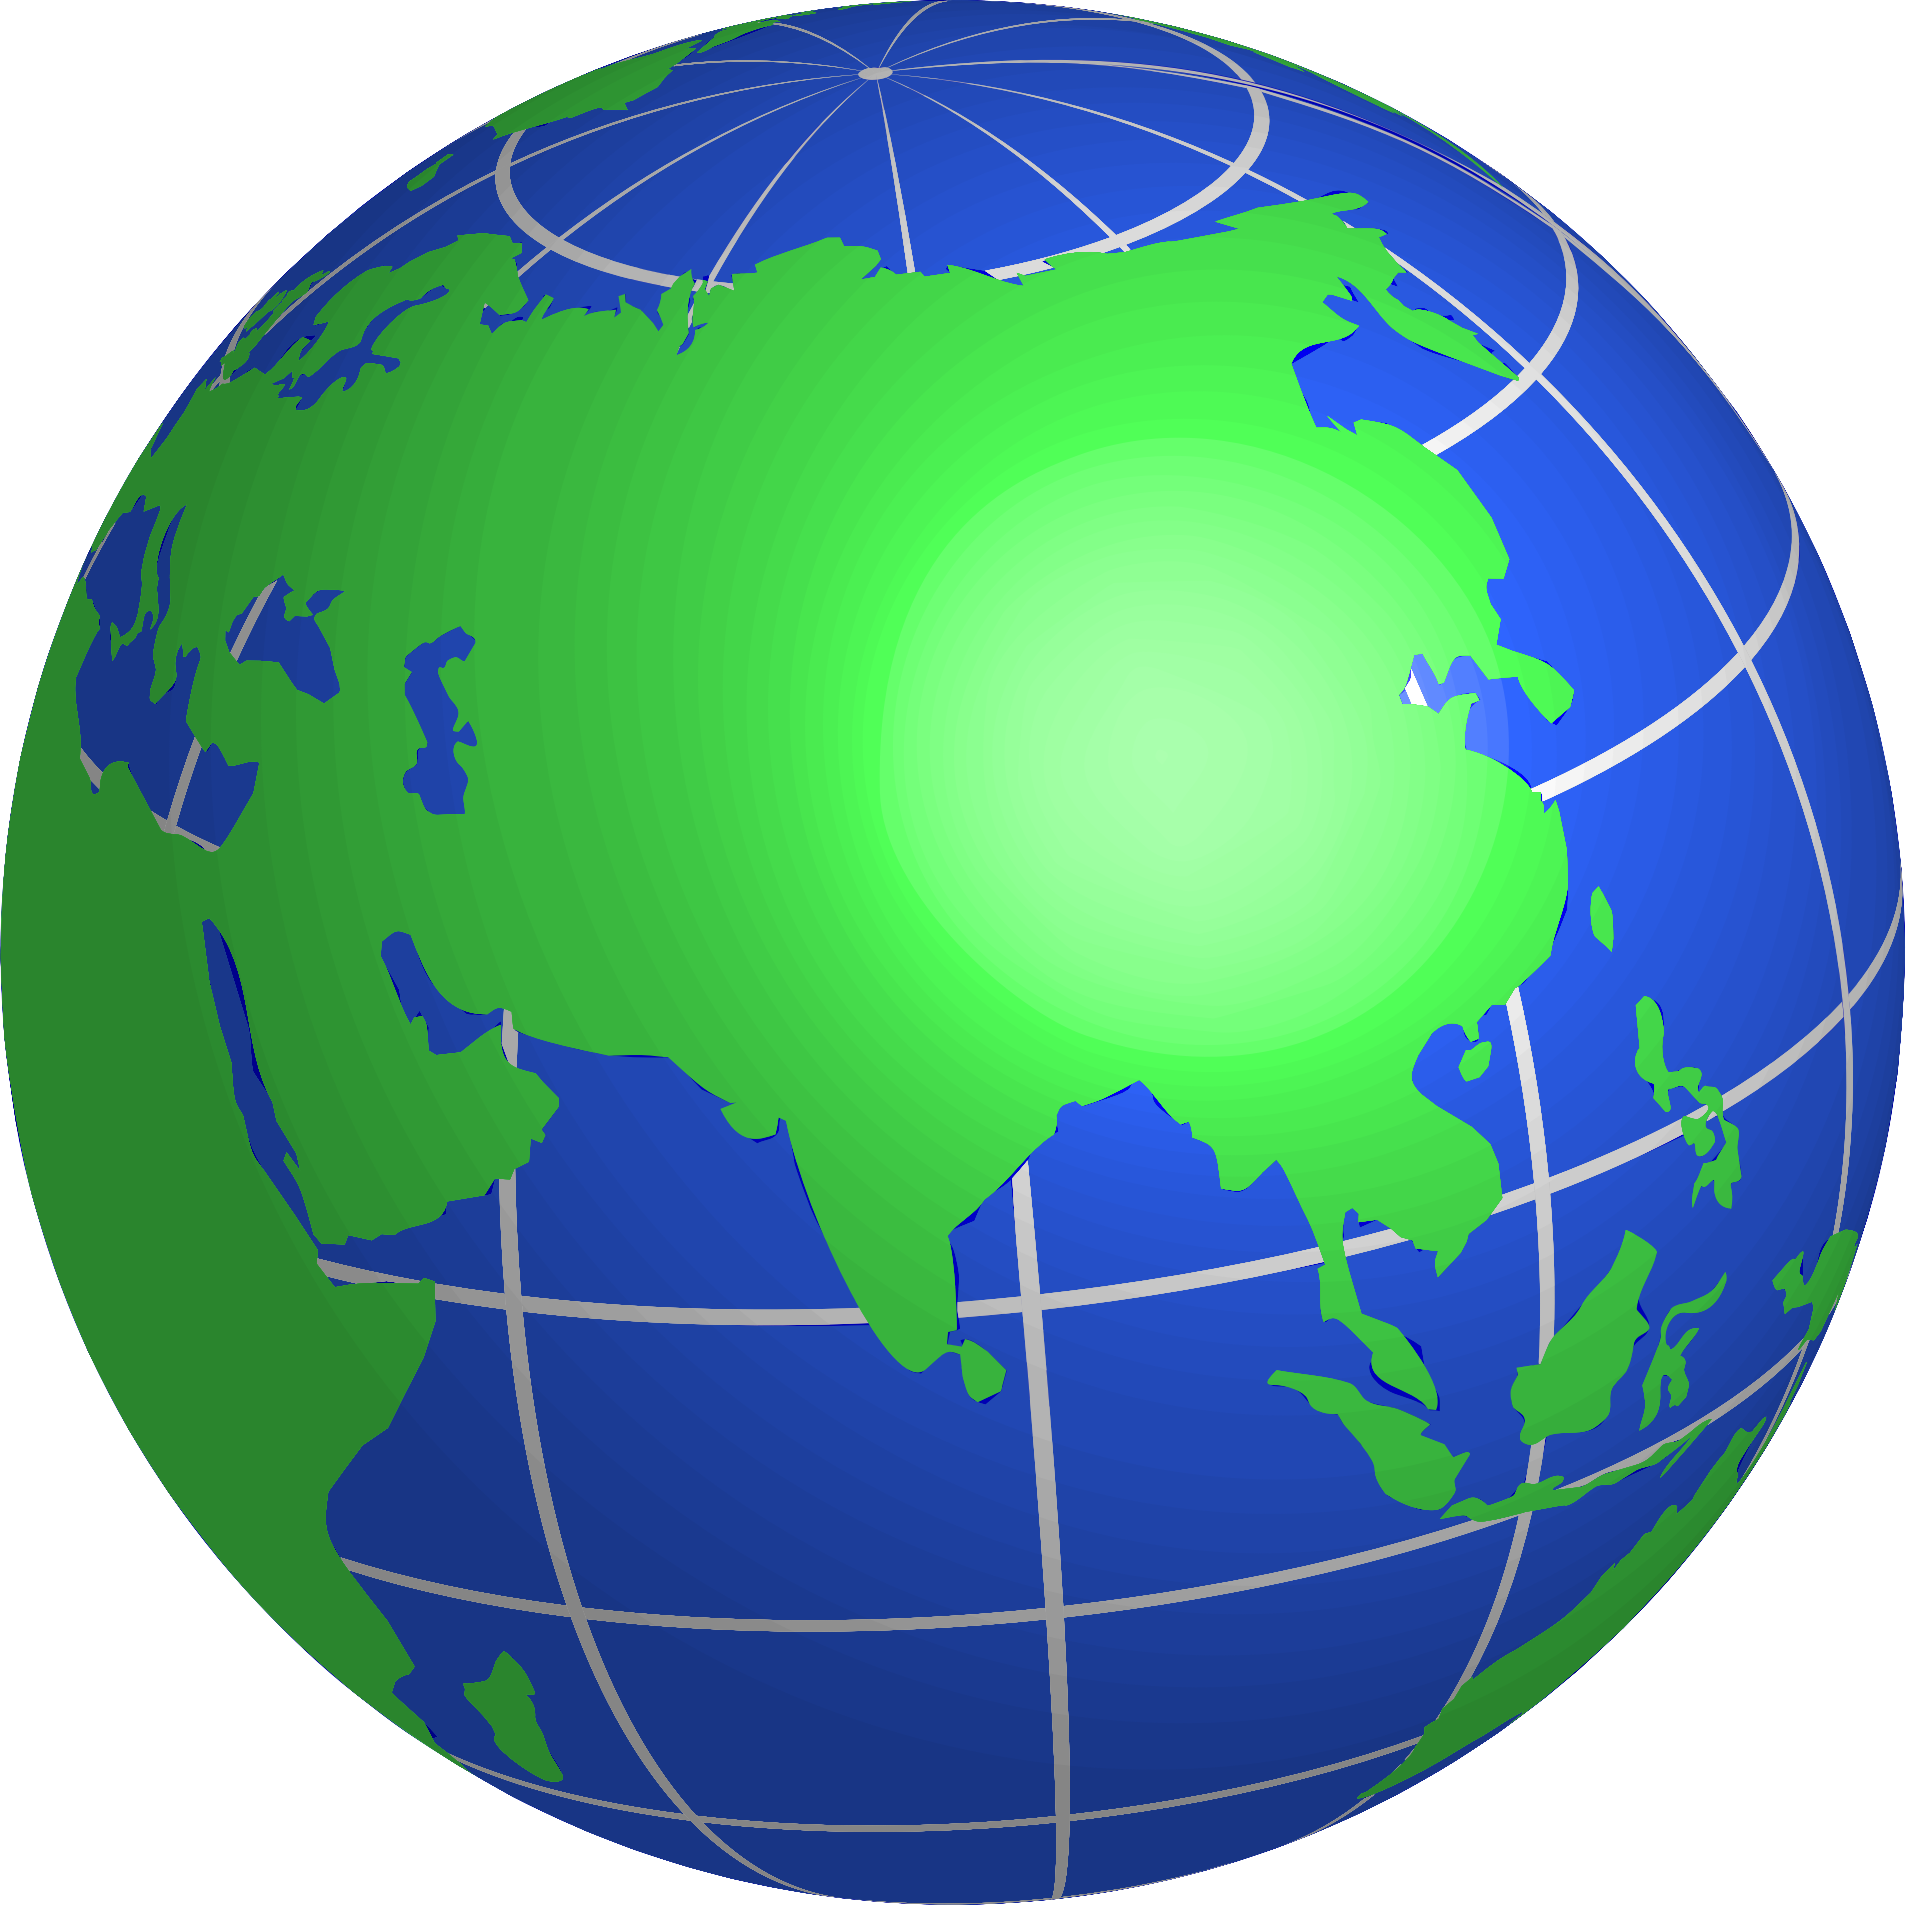 Globe png image. Images free download